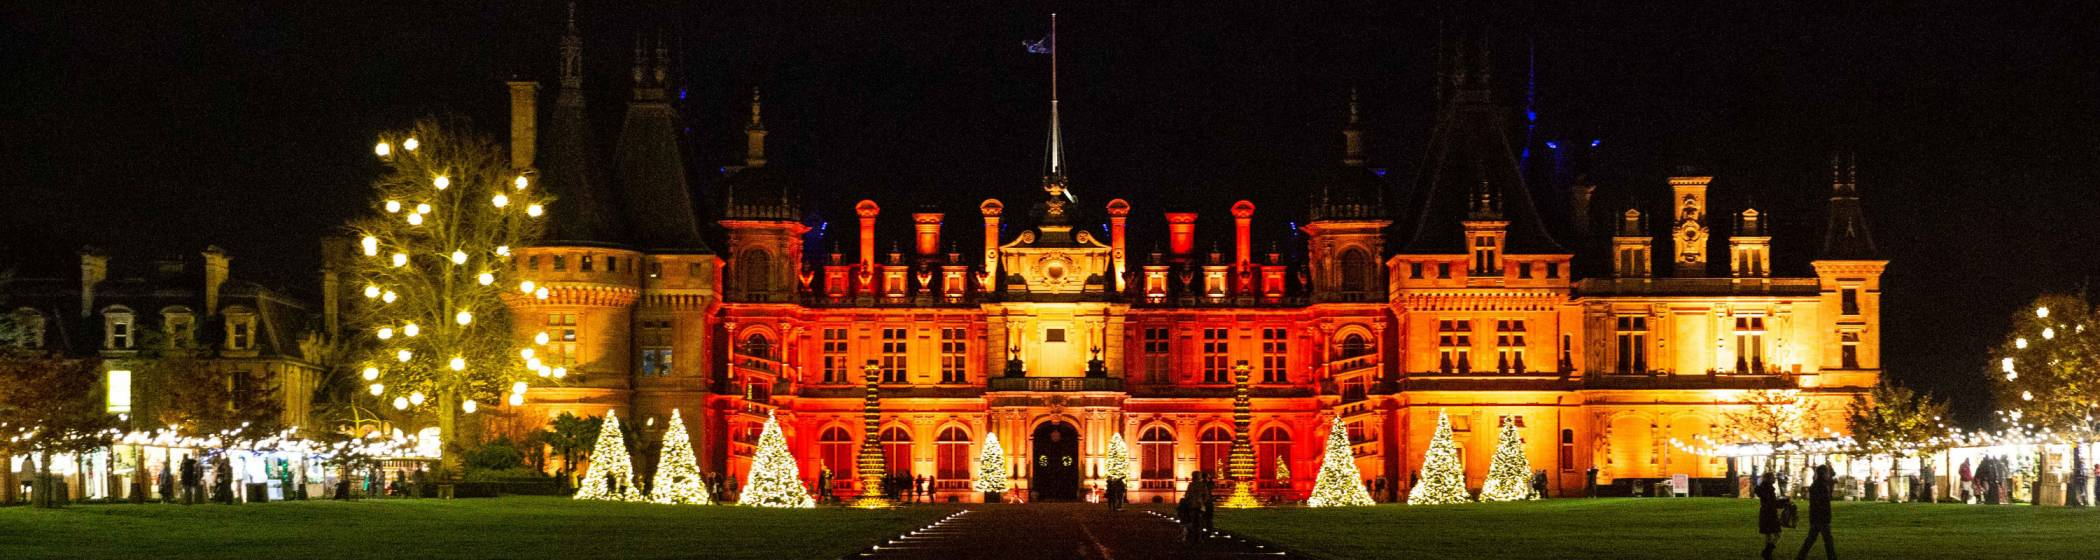 House illuminated in colour at Christmas